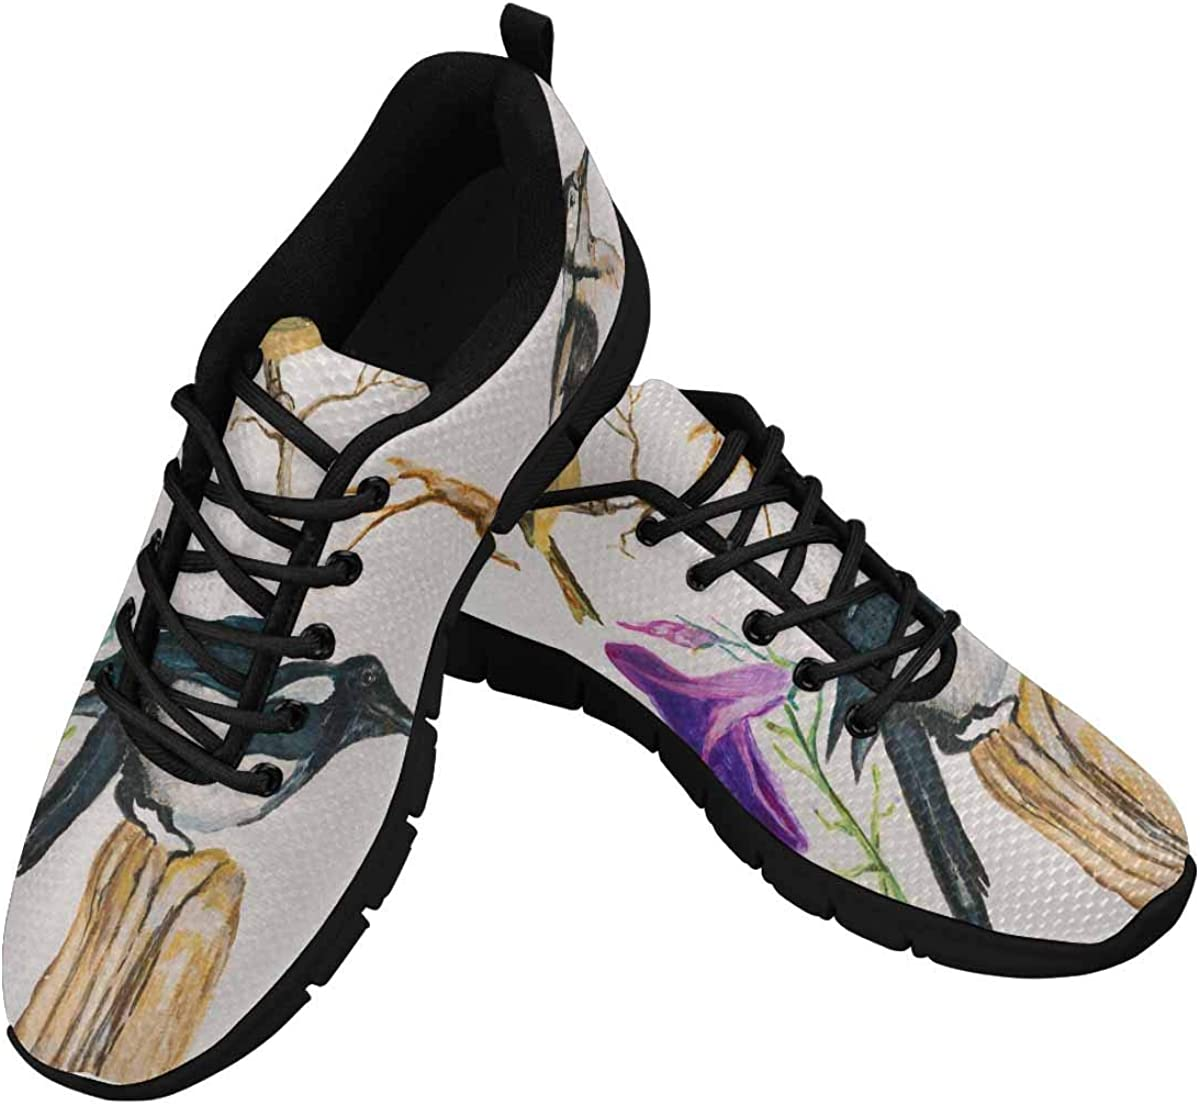 INTERESTPRINT Collection of Painted Birds Women's Walking Shoes Lightweight Casual Running Sneakers